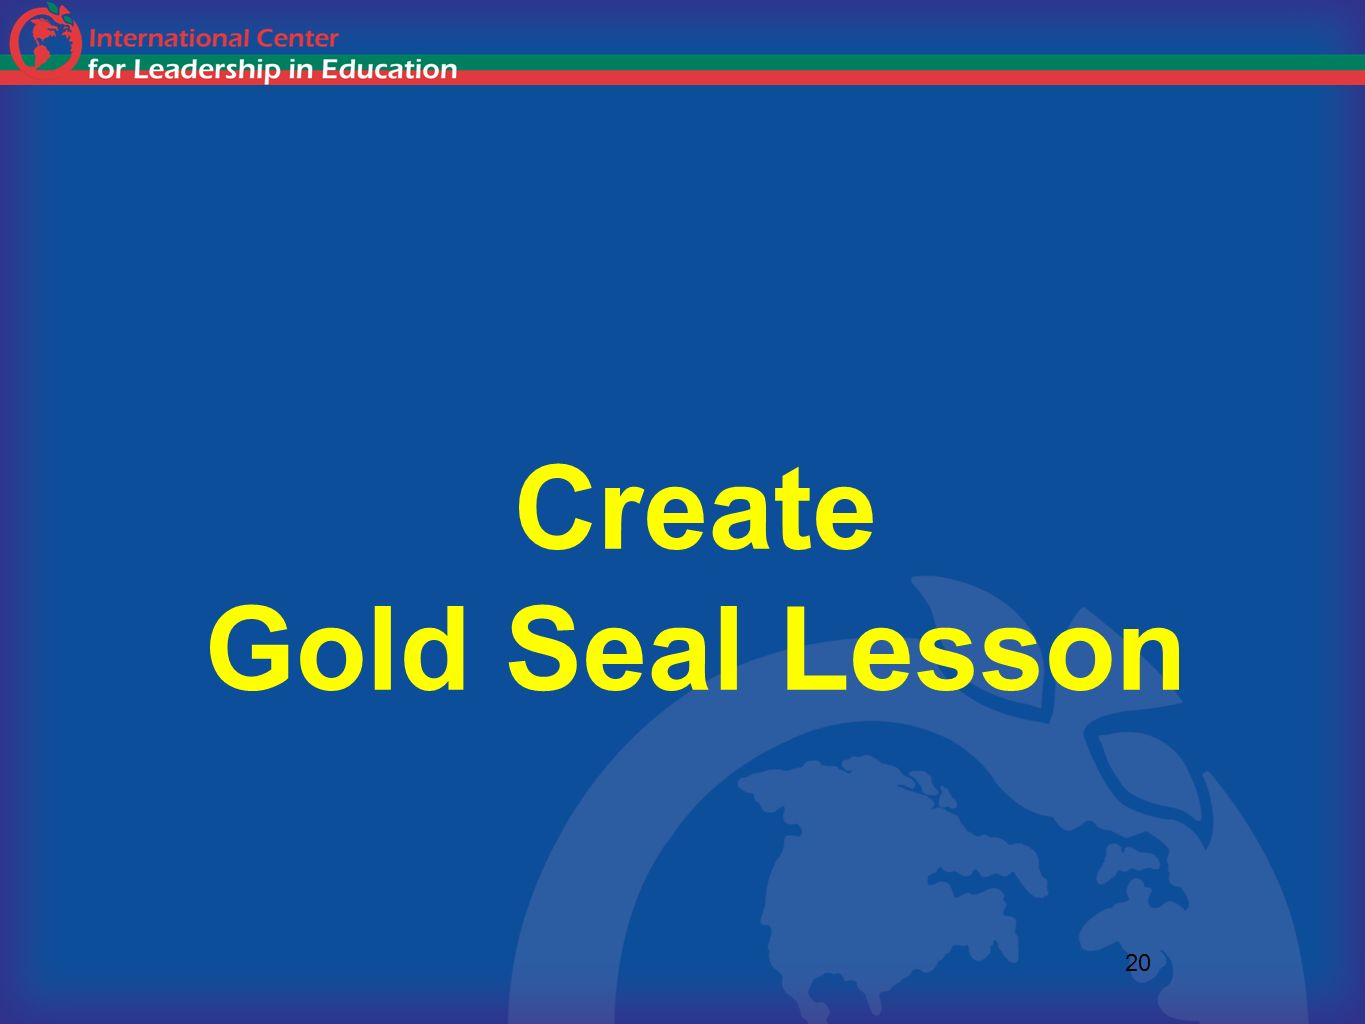 Create Gold Seal Lesson